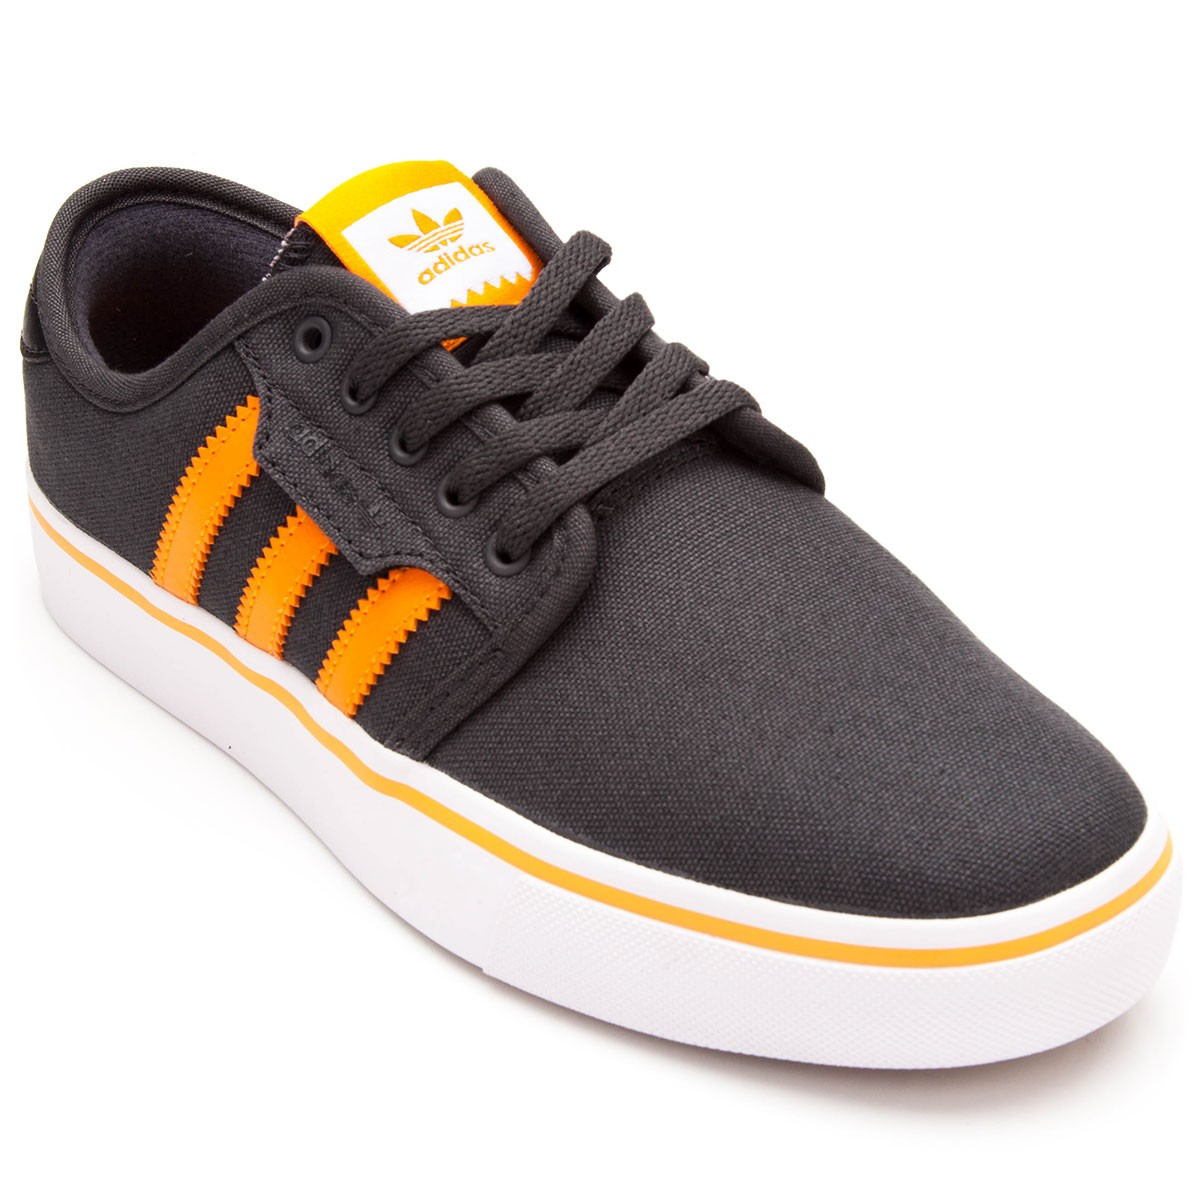 Adidas Seeley Shoes Grey